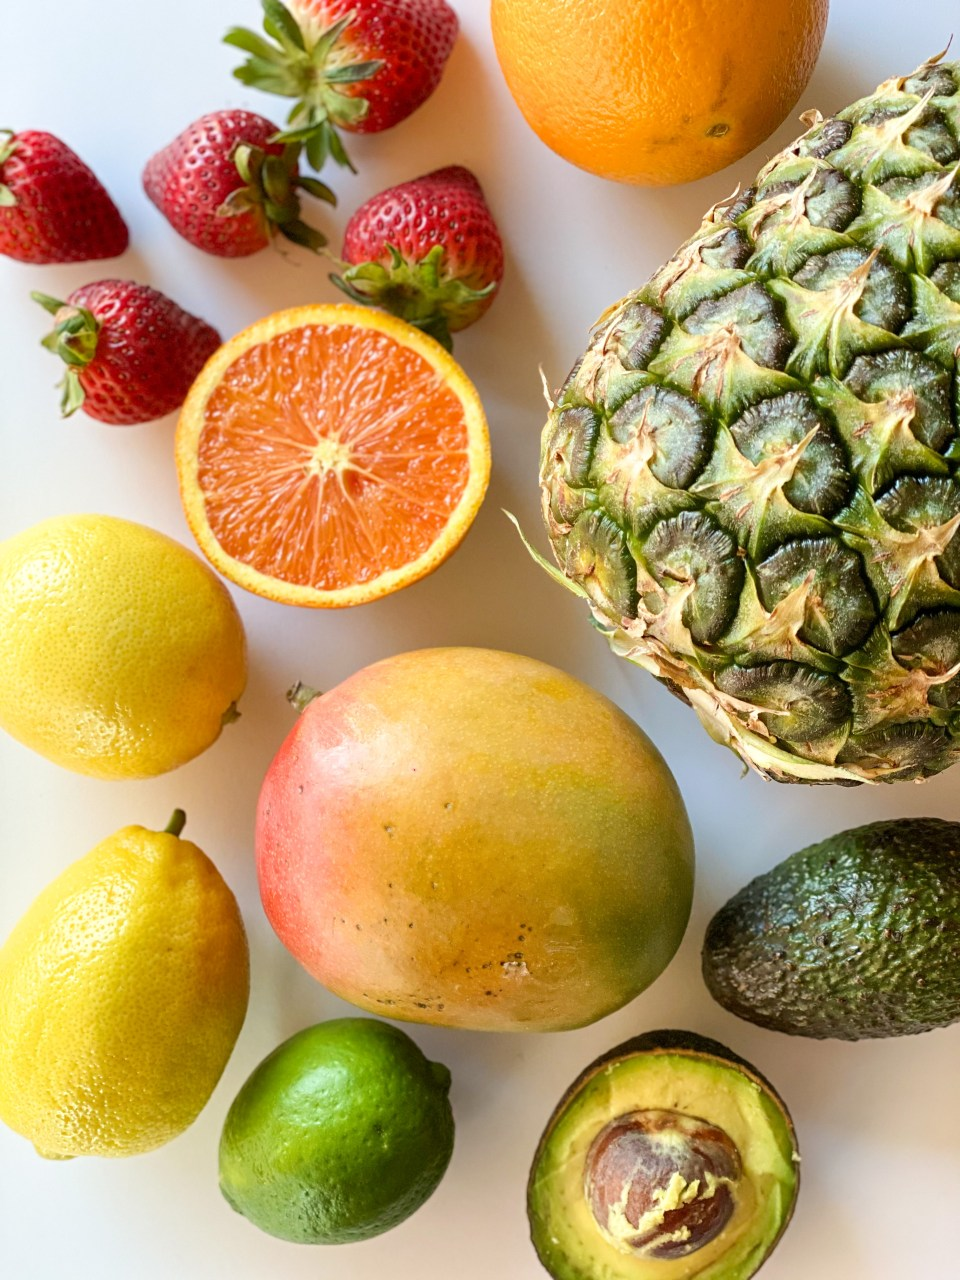 Fruits in season in the Spring: Spring Produce Guide for March, April, May. fiveplates.com